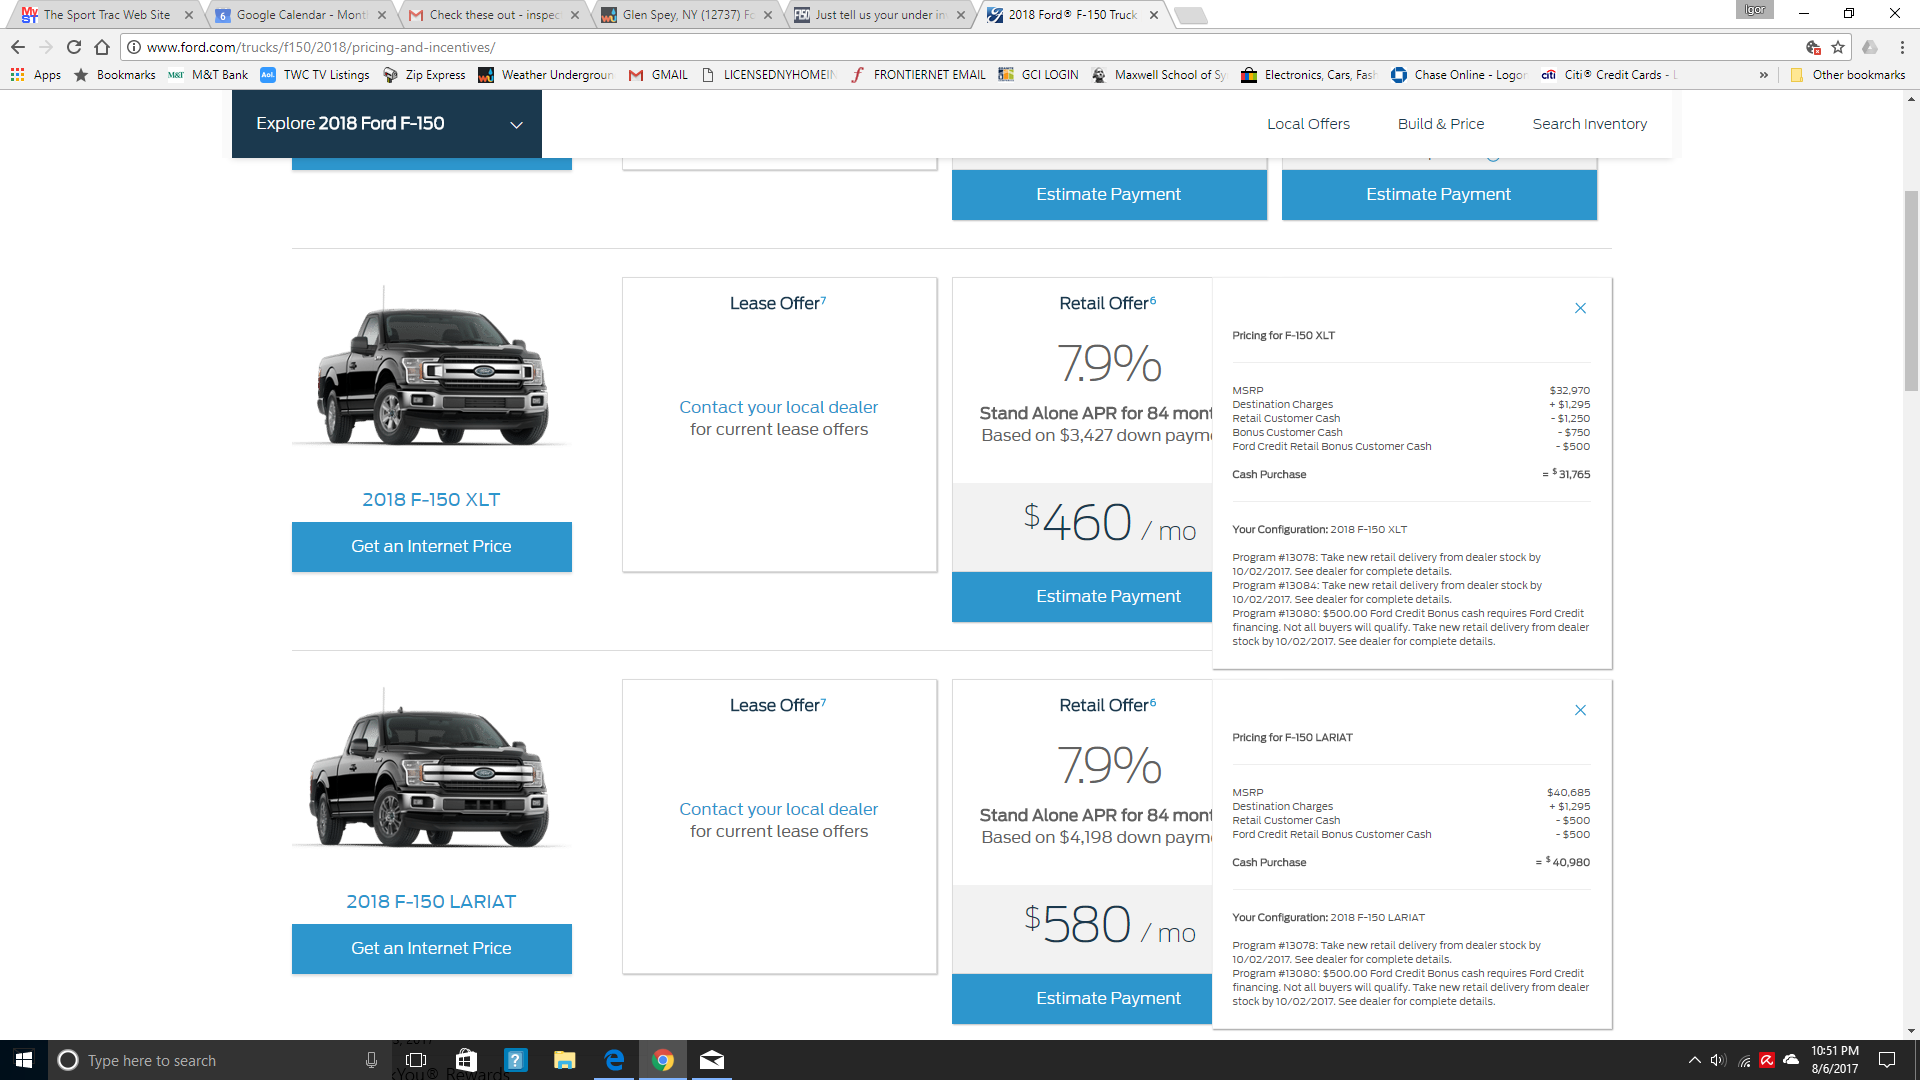 It comes up on ford com website along with the available incentives